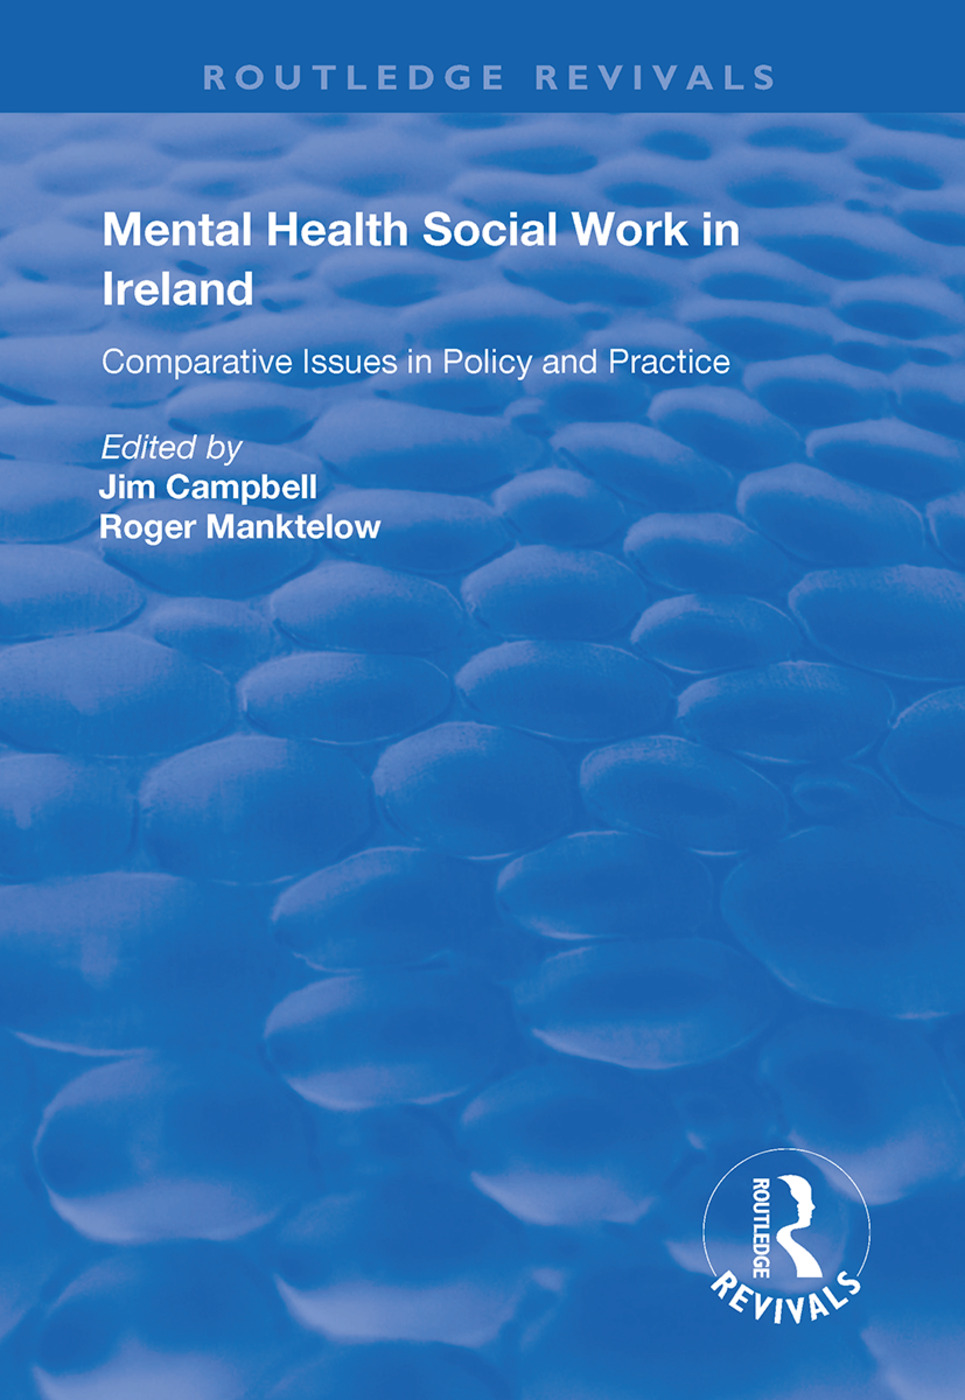 Mental Health Social Work in Ireland: Comparative Issues in Policy and Practice book cover